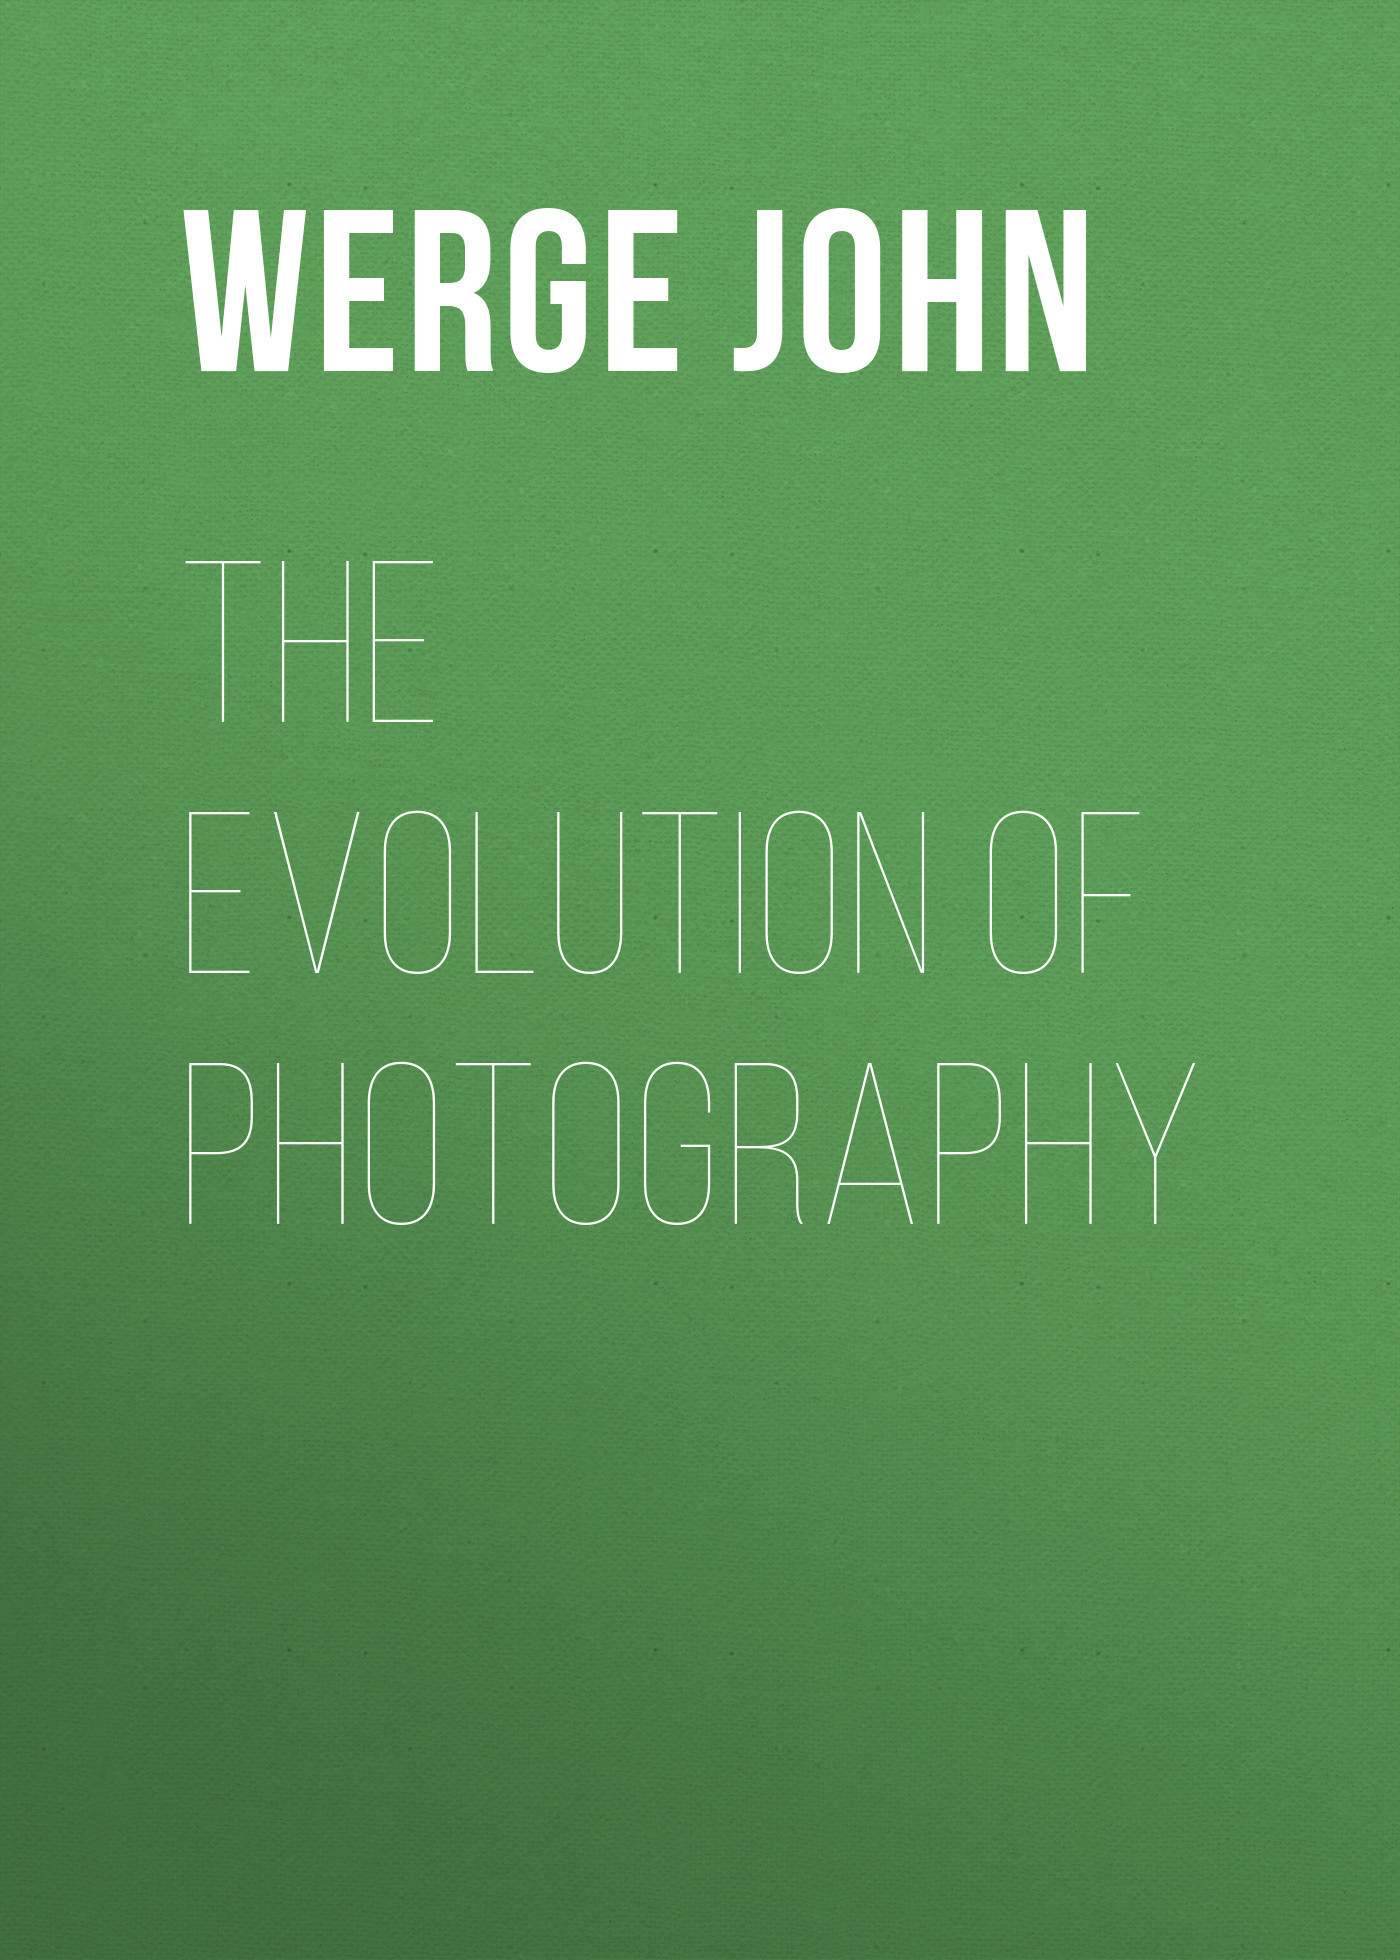 Werge John The Evolution of Photography